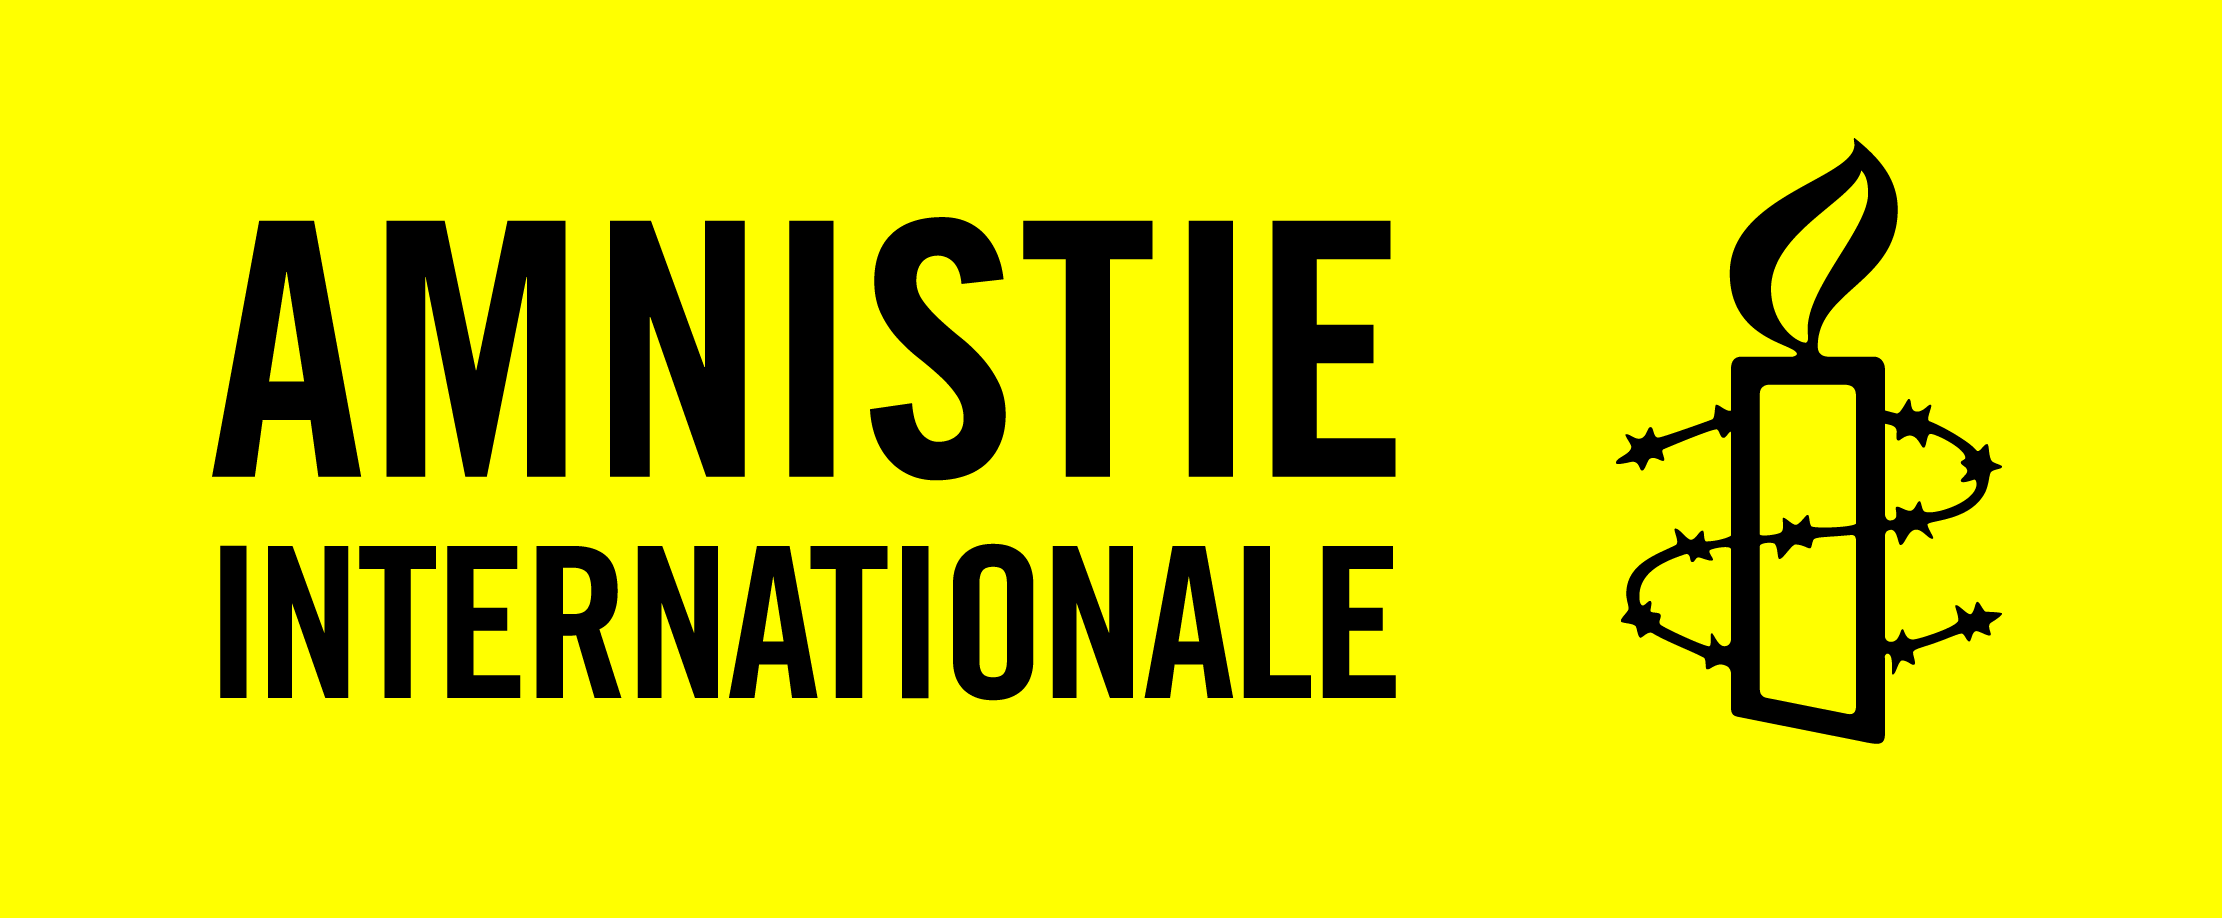 Amnistie internationale Canada francophone